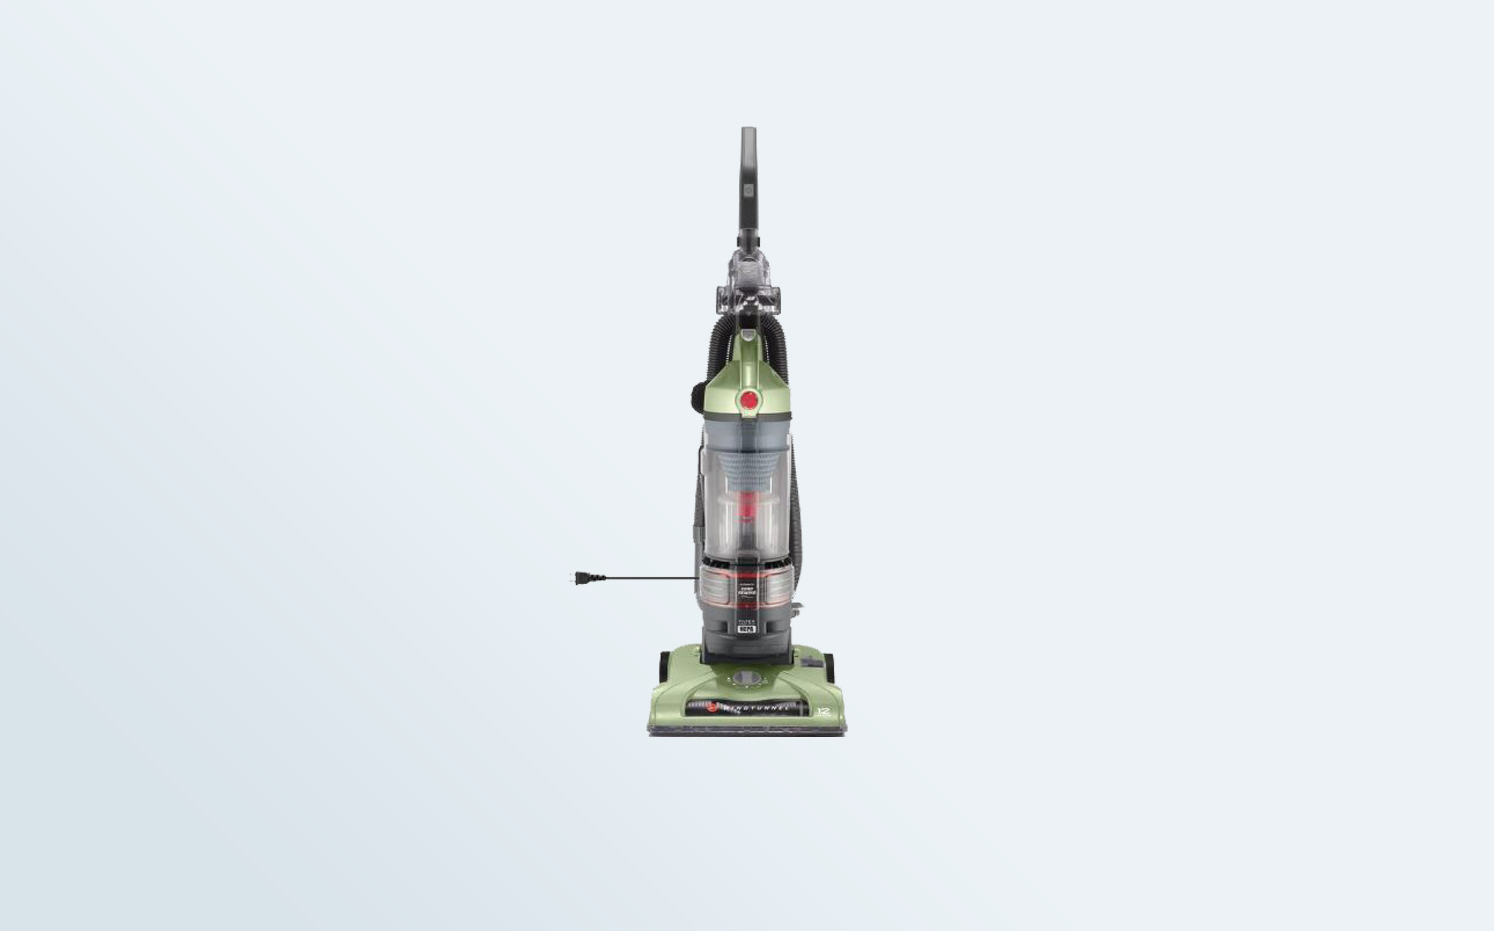 hight resolution of best upright vacuums 2019 vacuum cleaner ratings test results top ten reviews